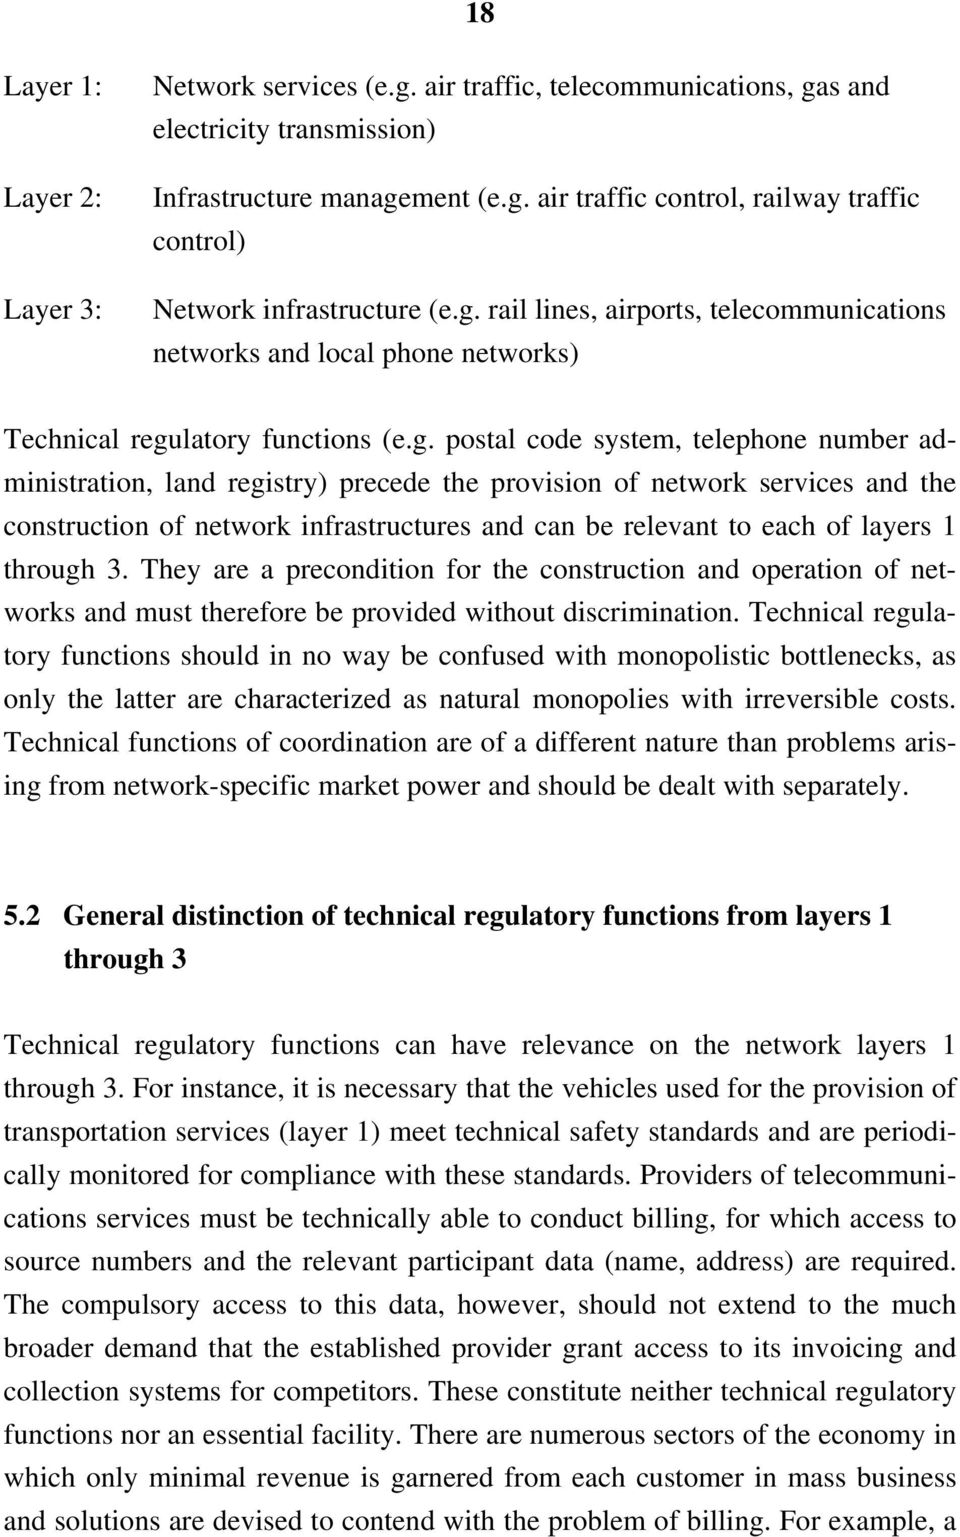 provision of network services and the construction of network infrastructures and can be relevant to each of layers 1 through 3.